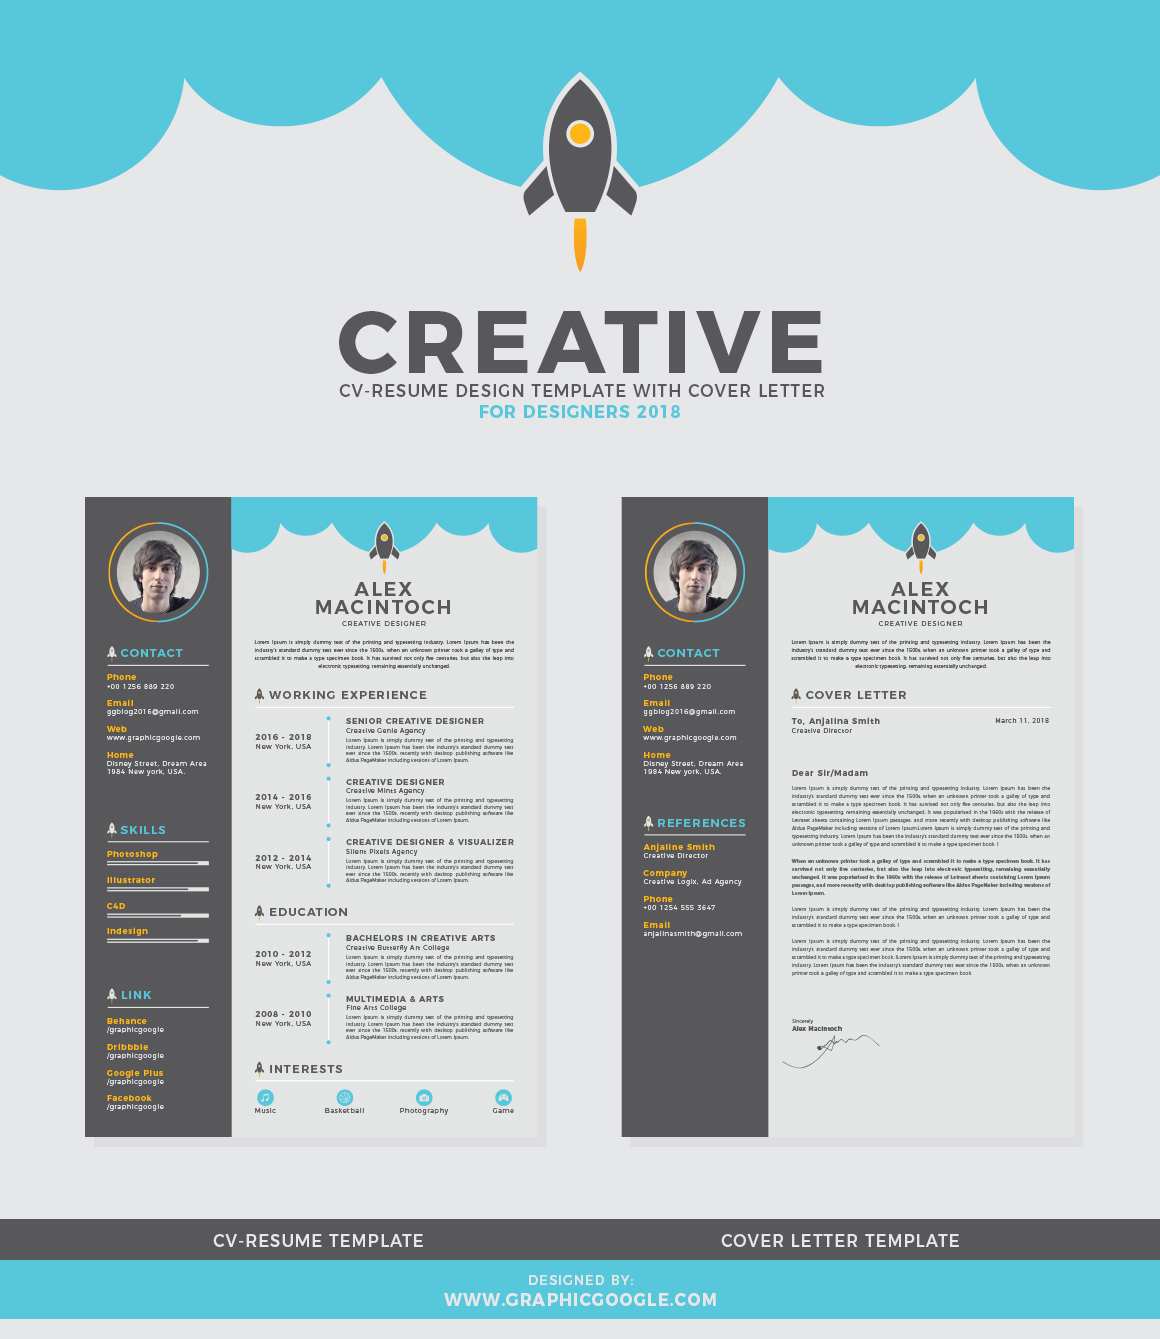 Free Creative CVResume Design Template With Cover Letter